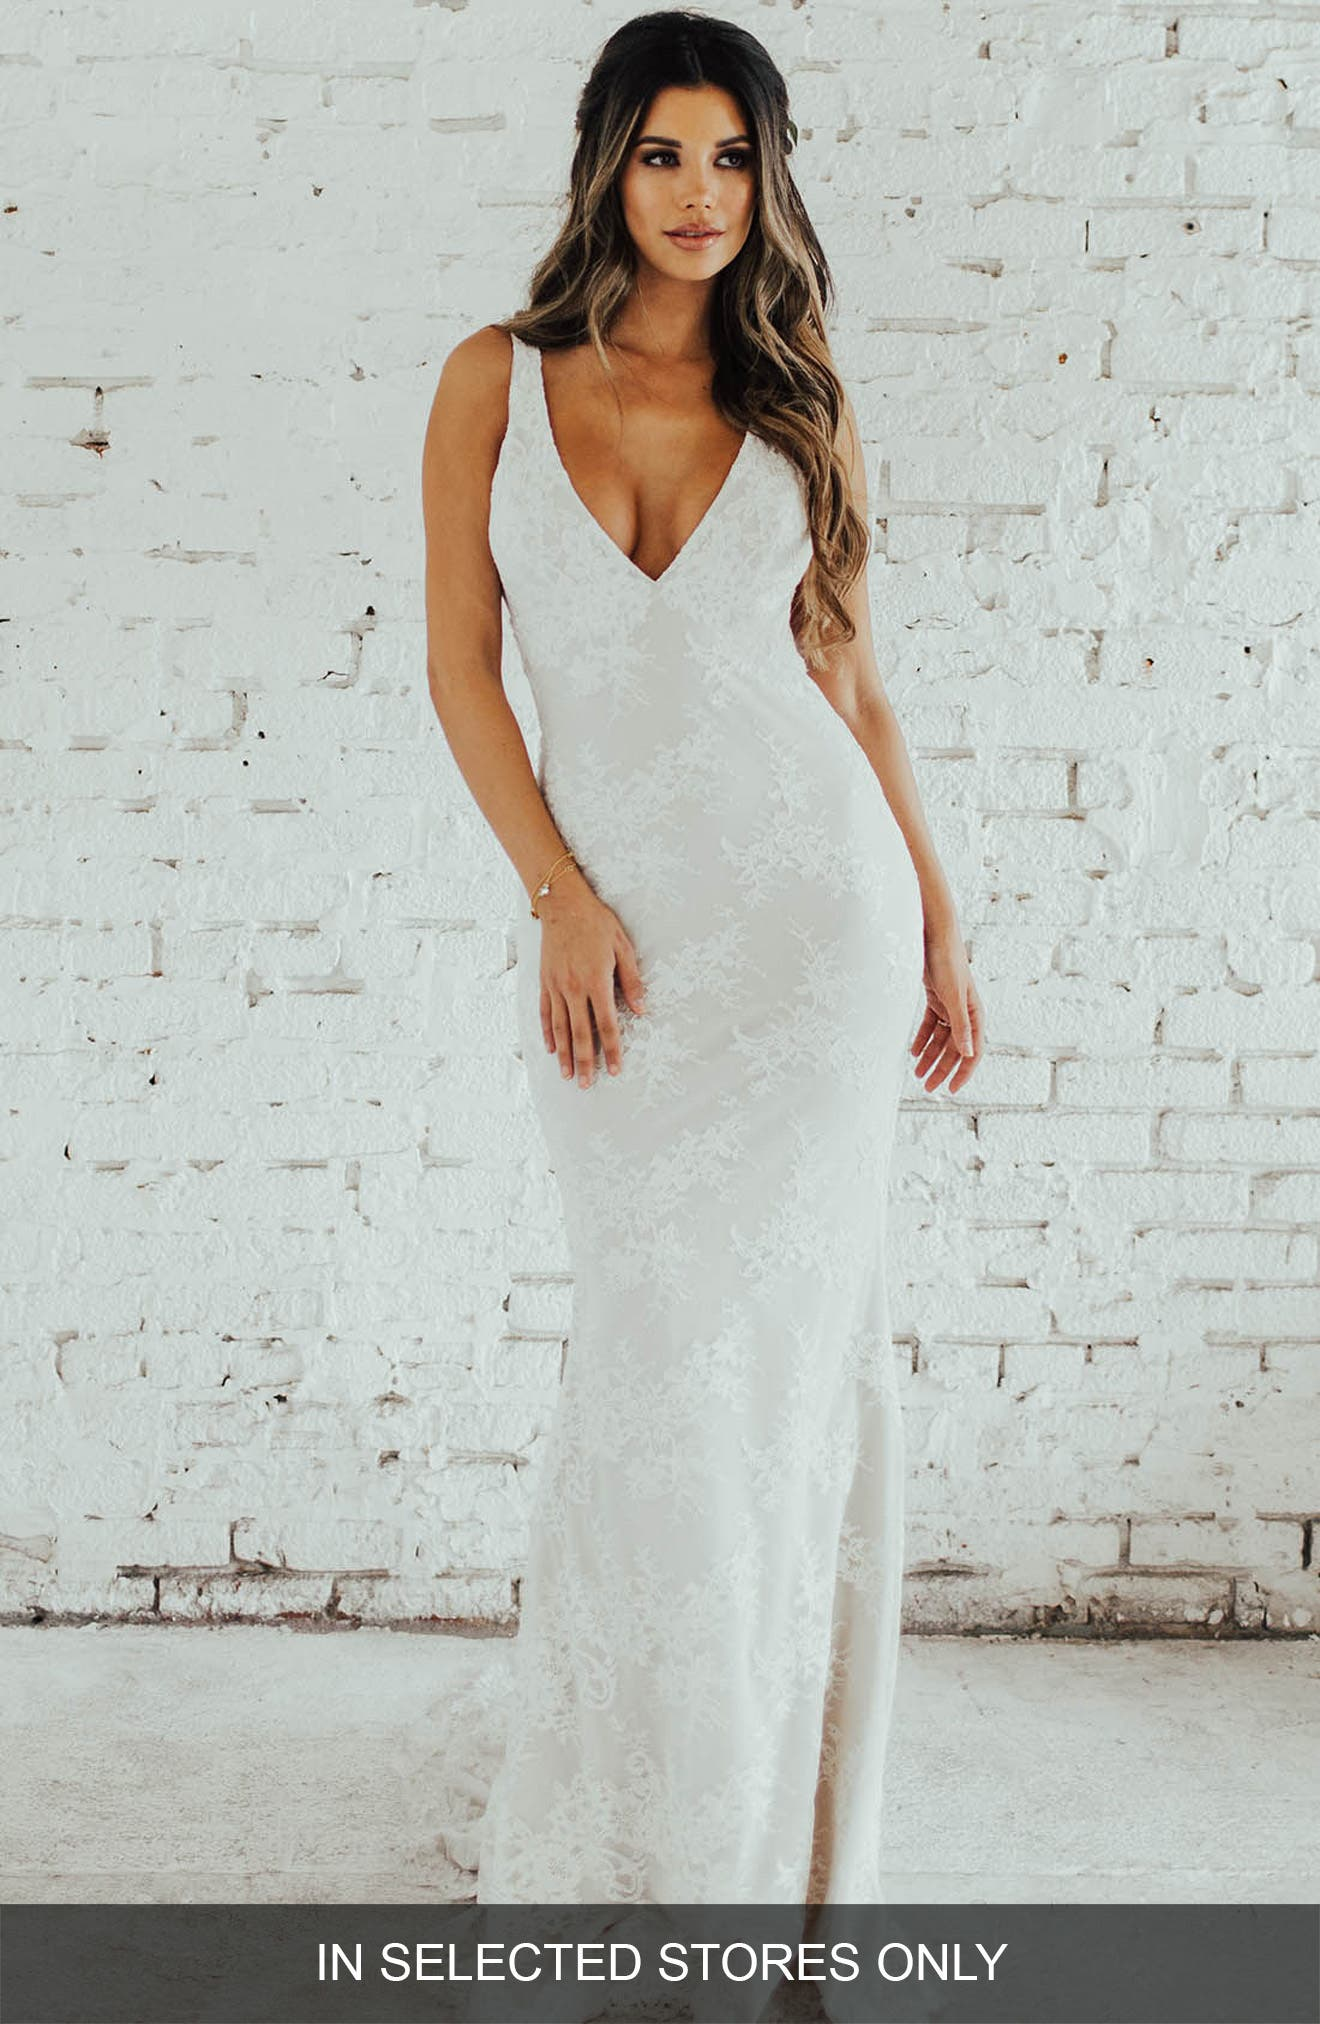 Oslo Chantilly Lace Mermaid Gown,                             Main thumbnail 1, color,                             Ivory/ Nude